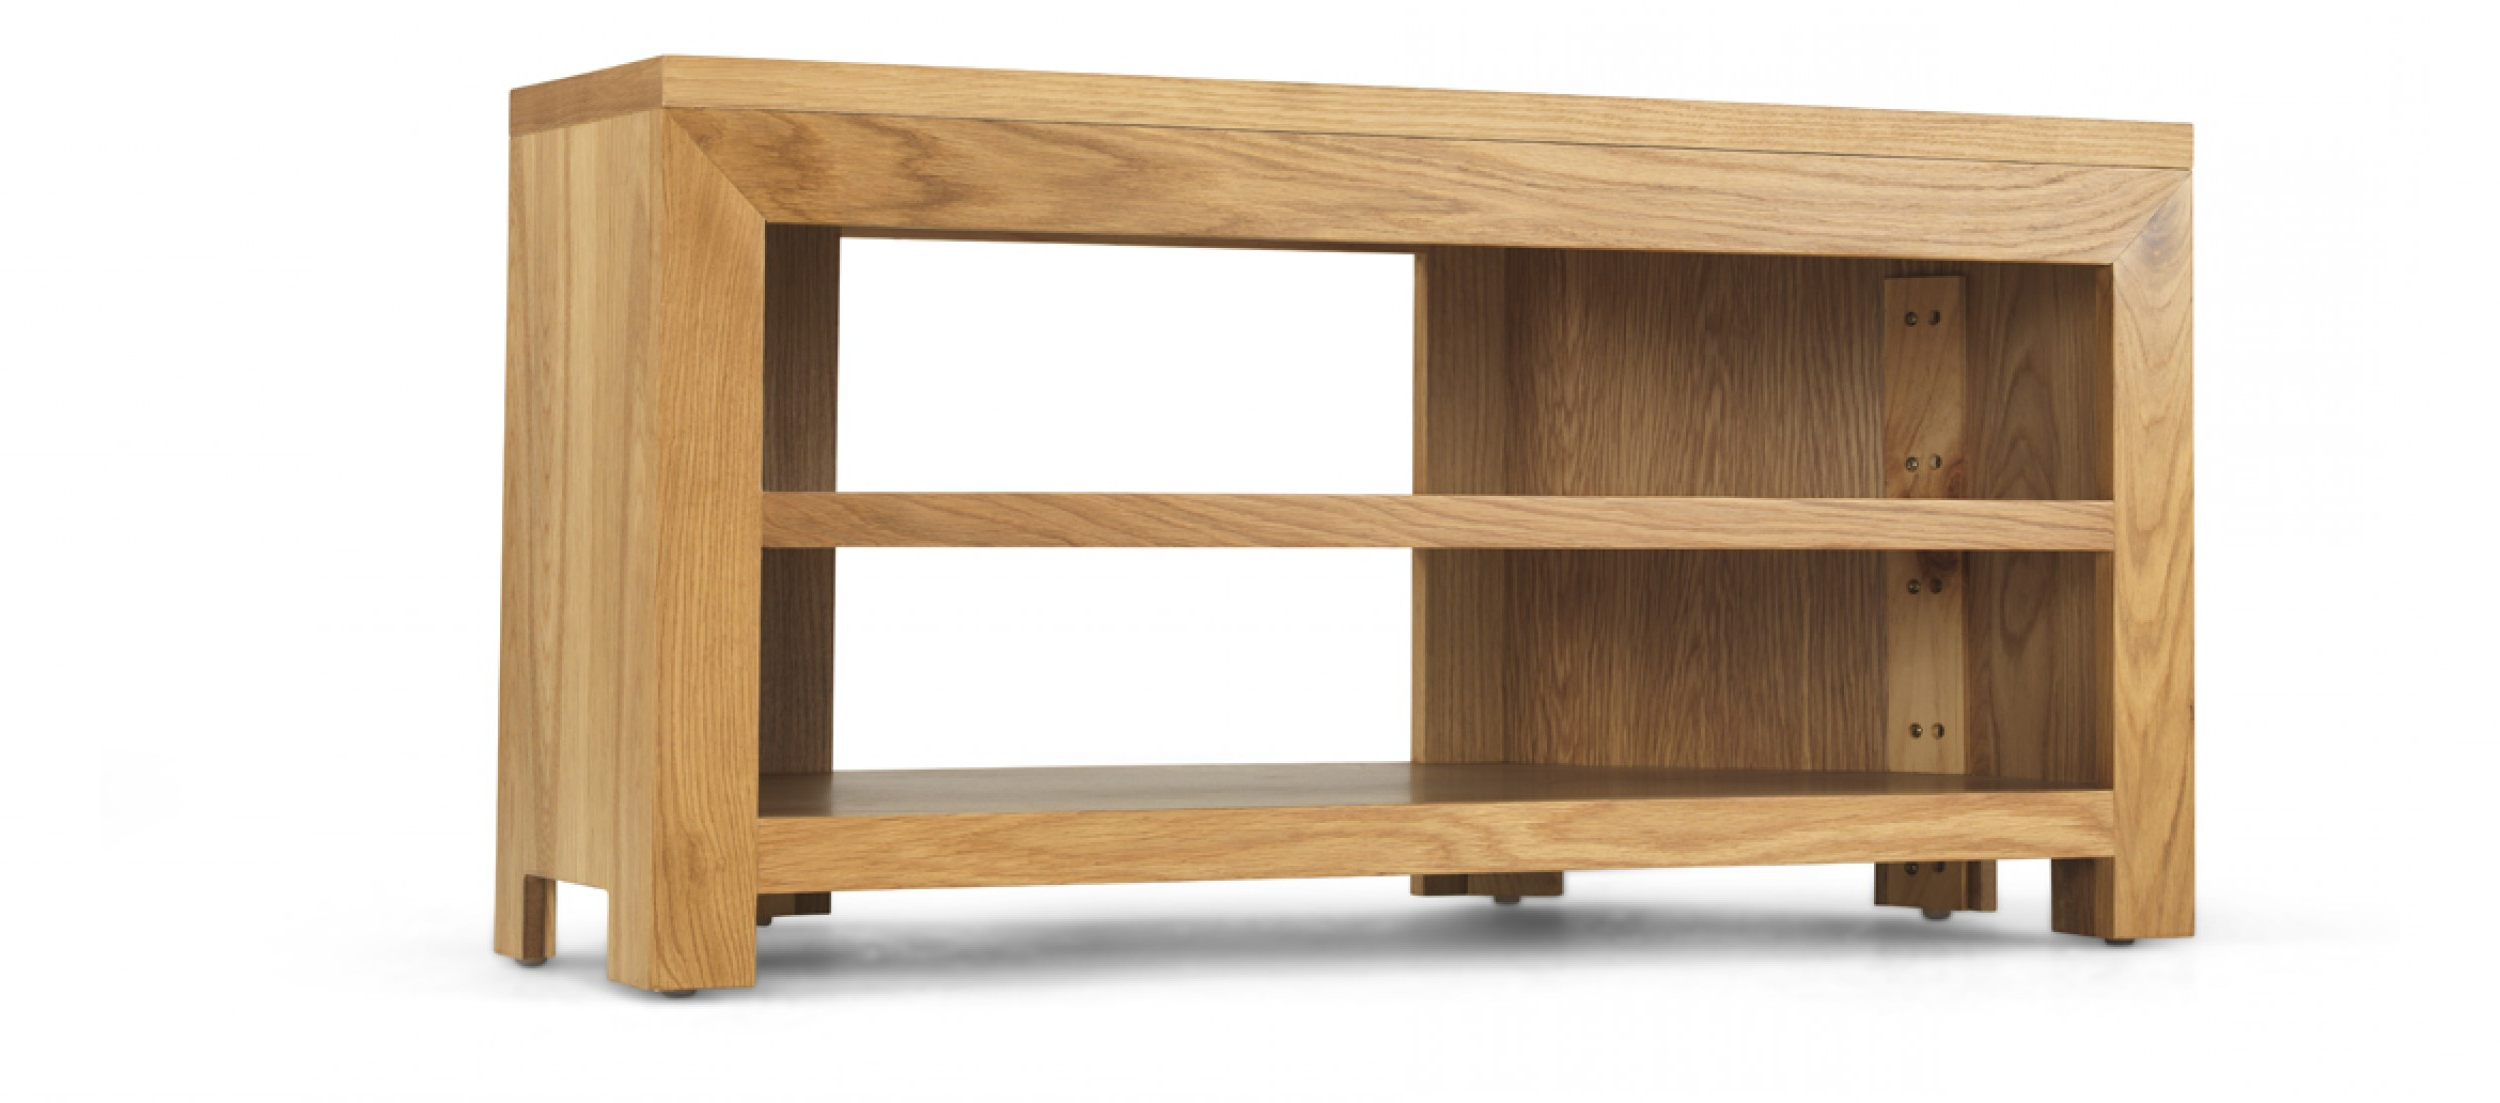 Contemporary Oak Tv Stands Inside Most Recent Cube Oak Open Corner Tv Unit (View 2 of 20)